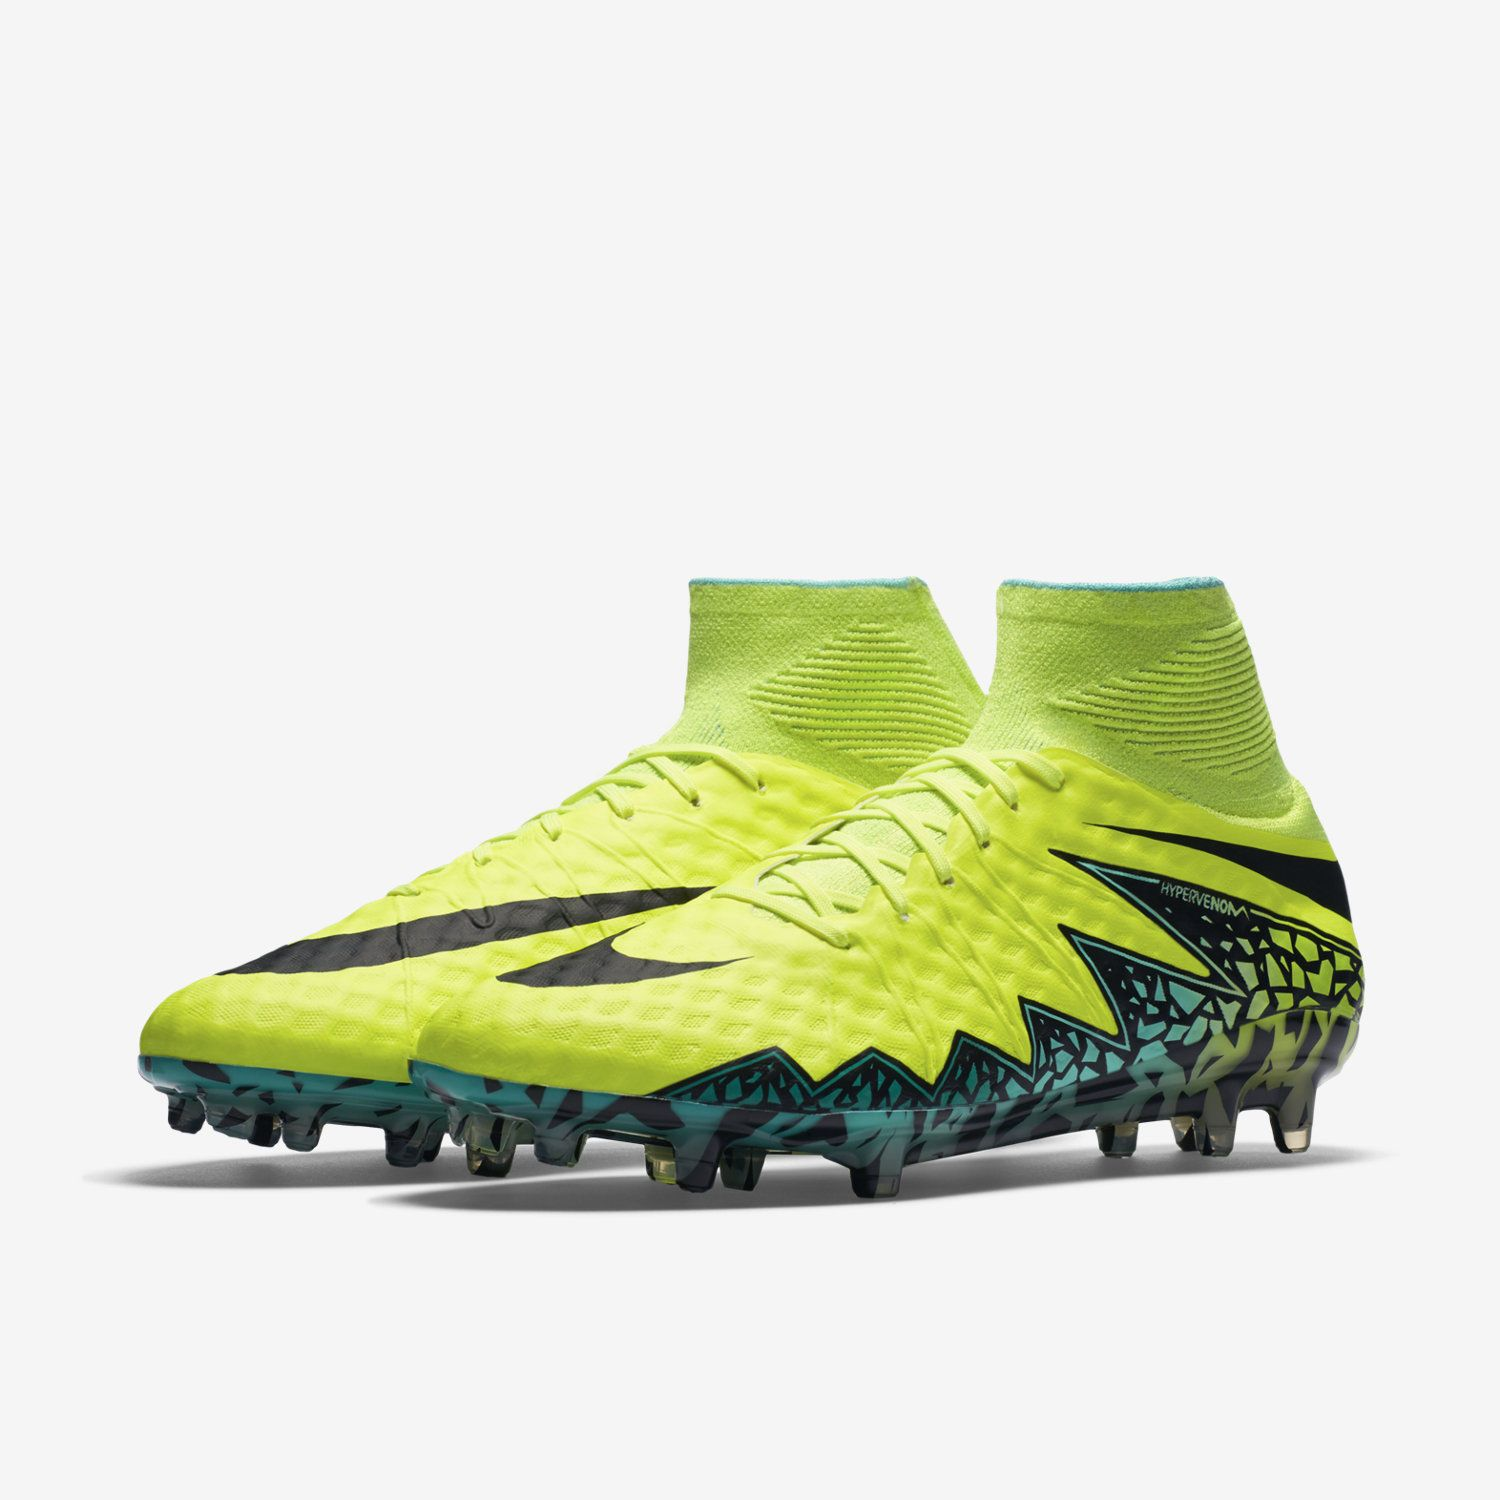 Men's Firm-Ground Soccer Cleat Nike Hypervenom Phantom II FG 747213-703